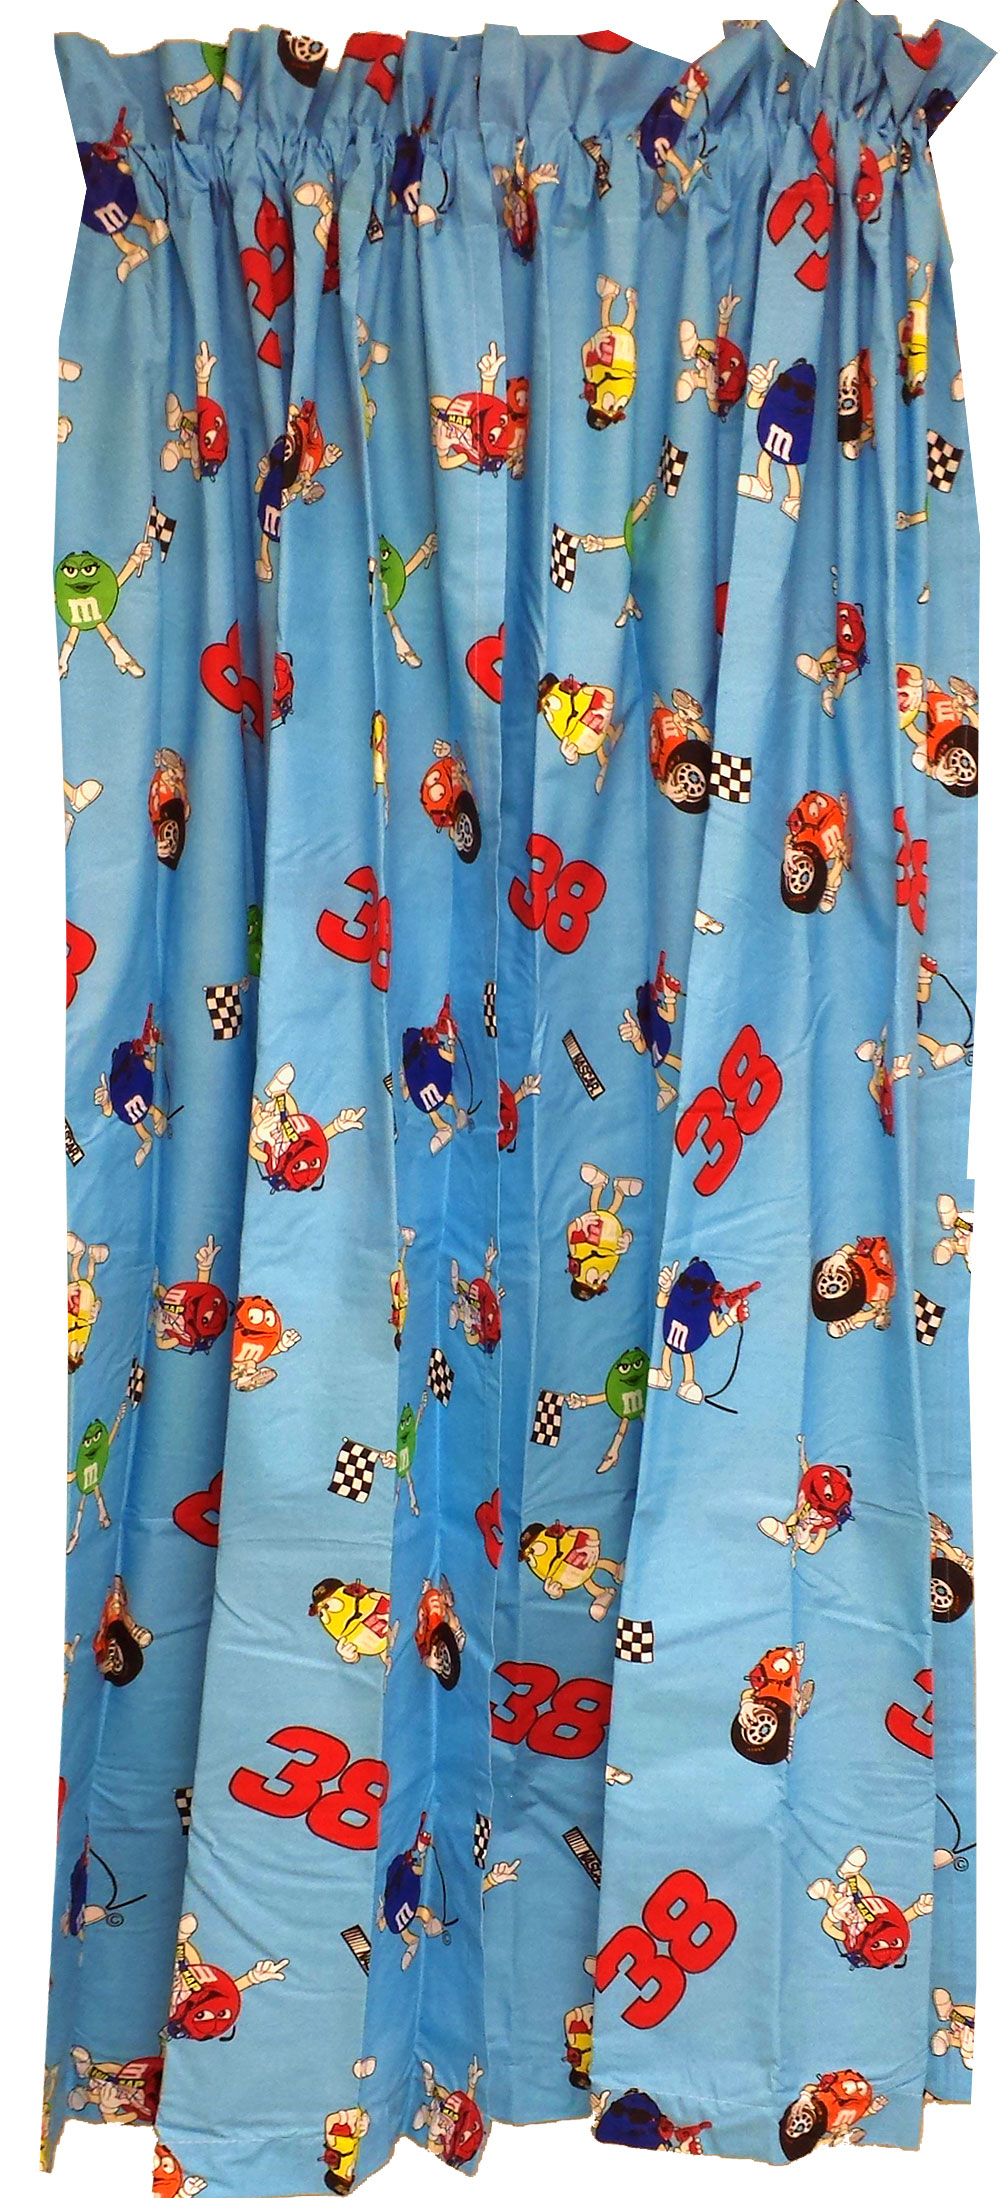 5pc Nascar Drapes-Curtains and Valance Set